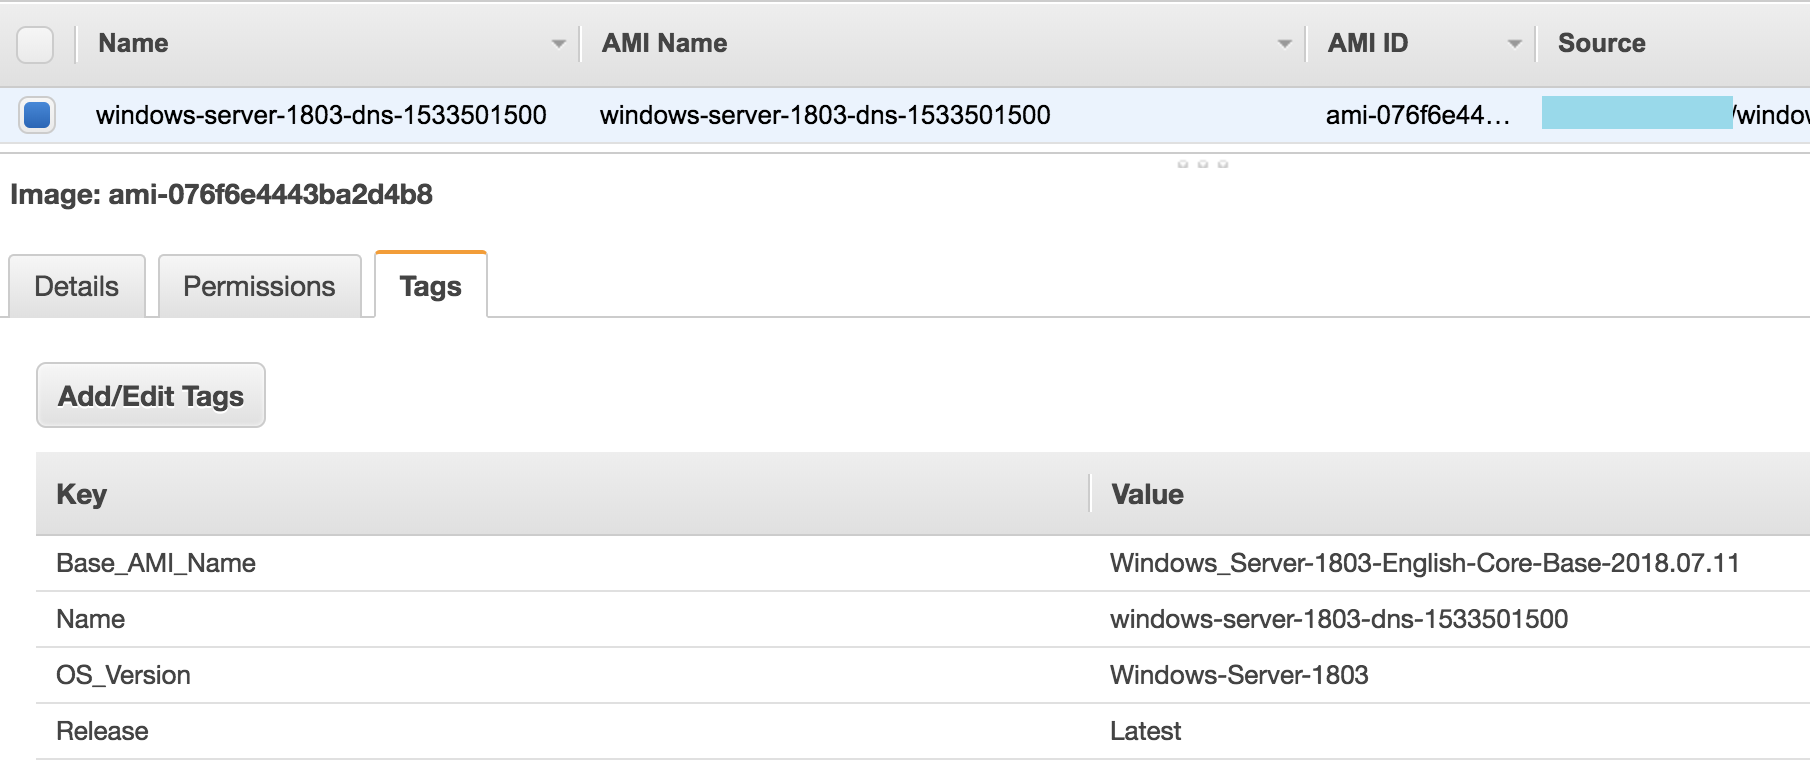 AWS console showing the created AMI